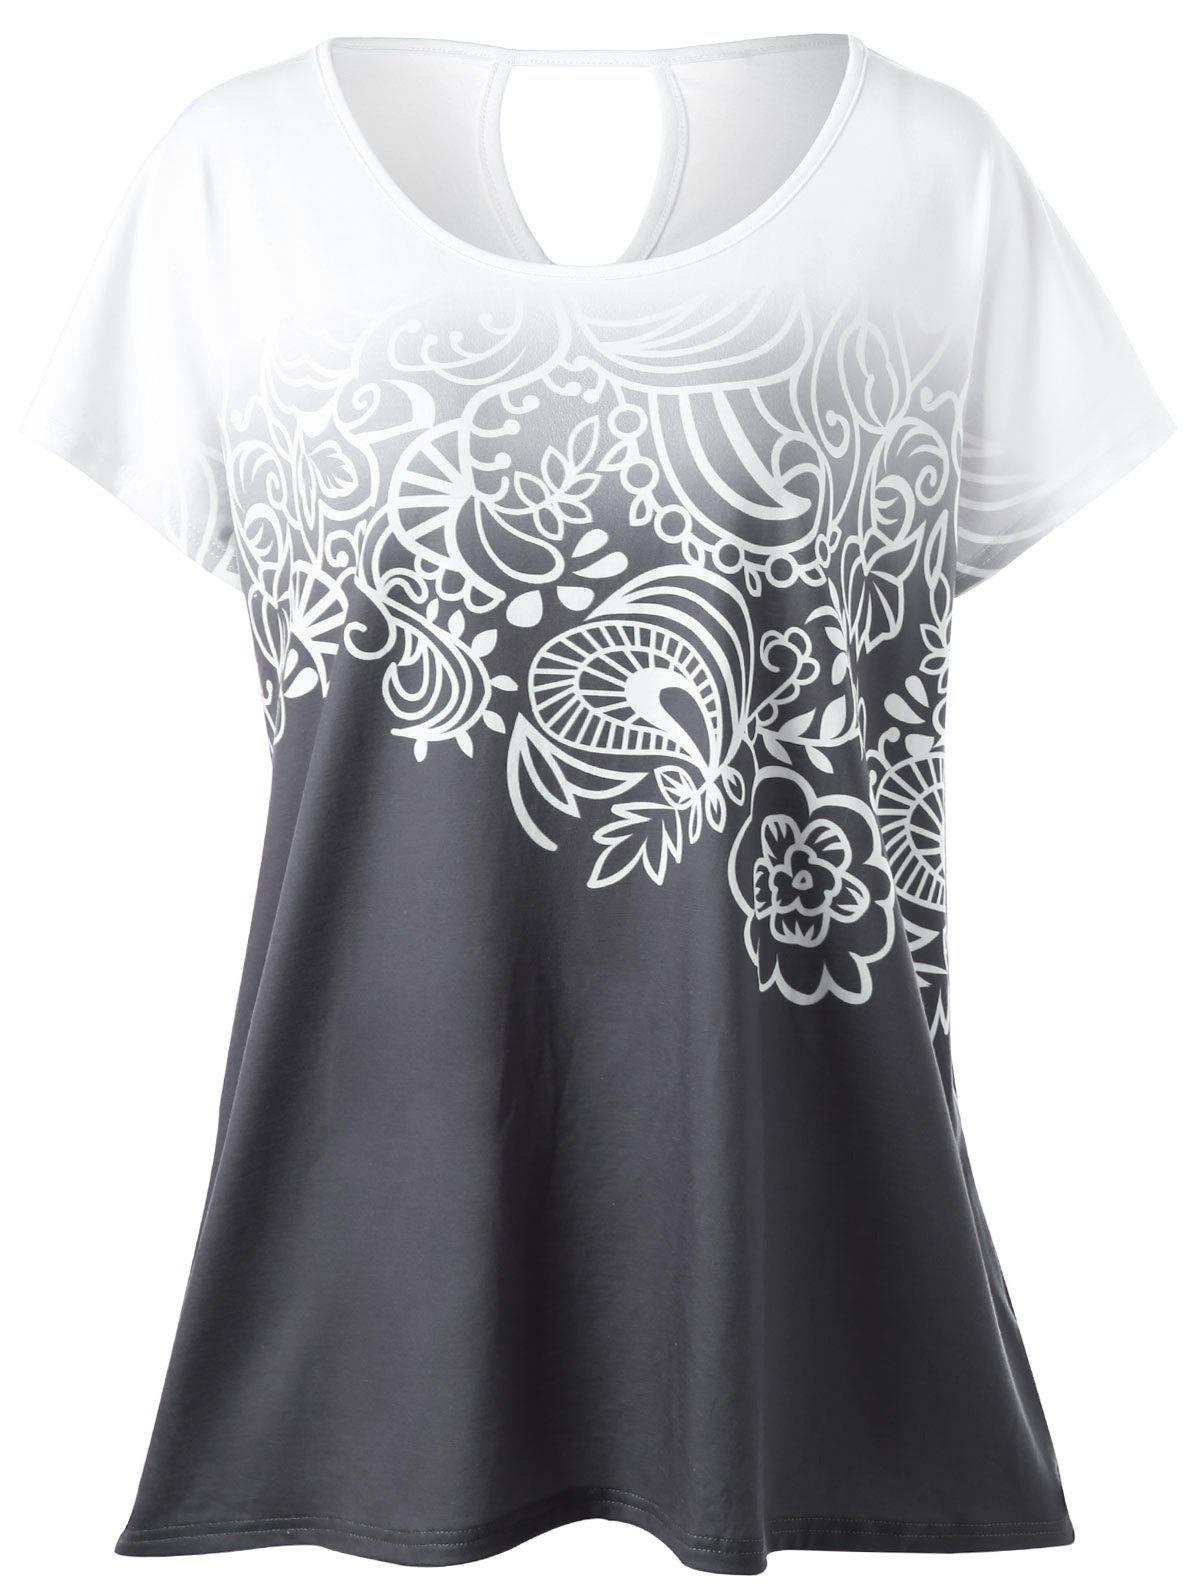 Plus Size Floral Ombre T-Shirt - WHITE GREY XL